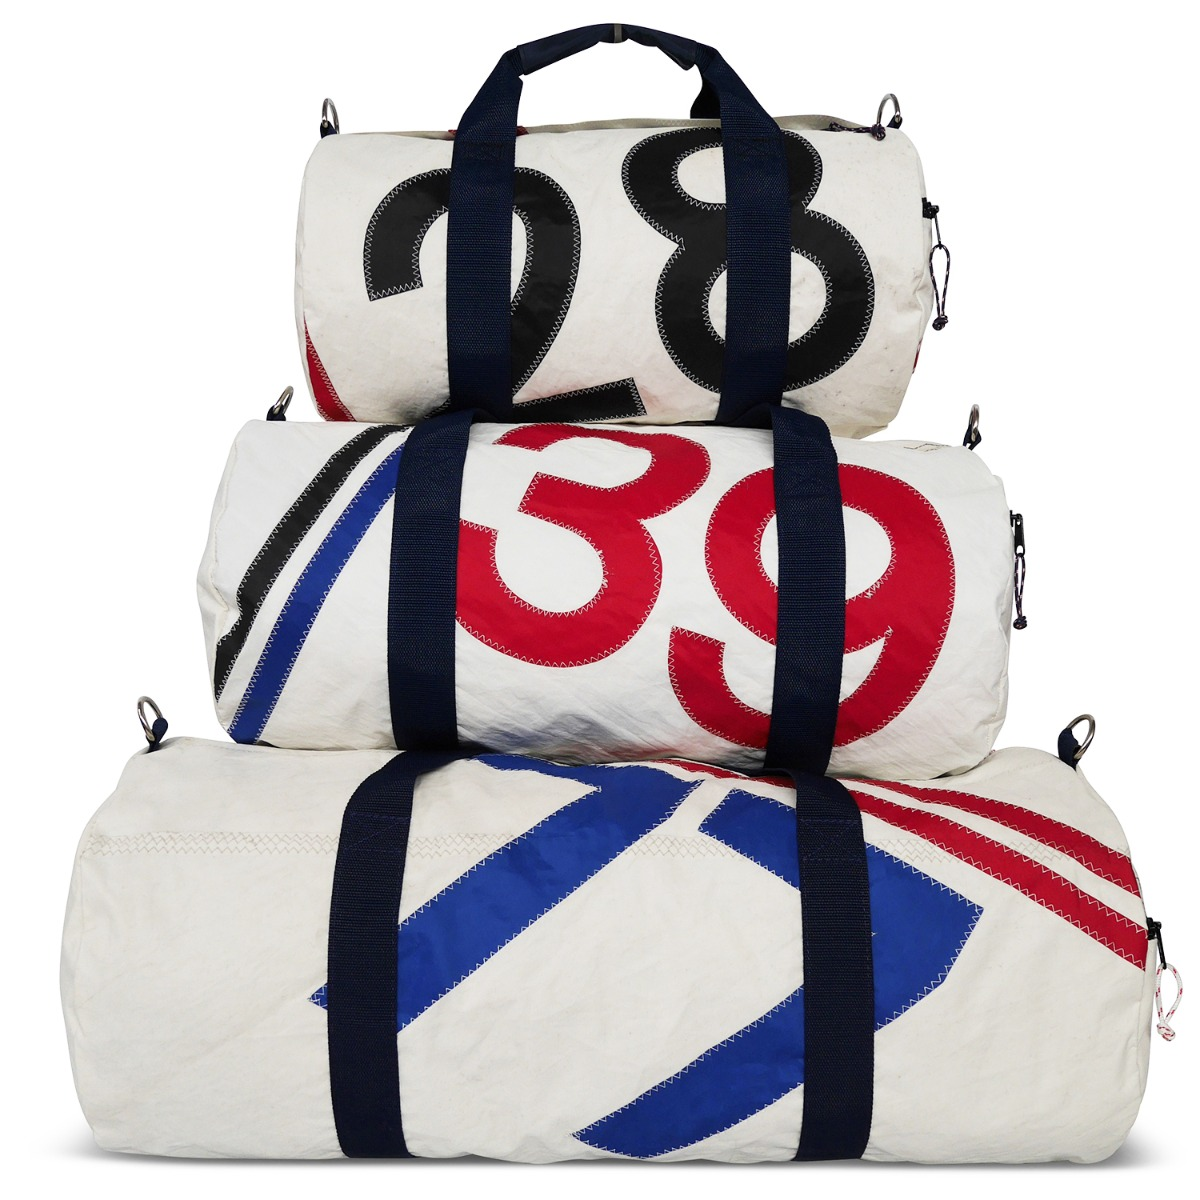 The Original Recycled Sail Seabags